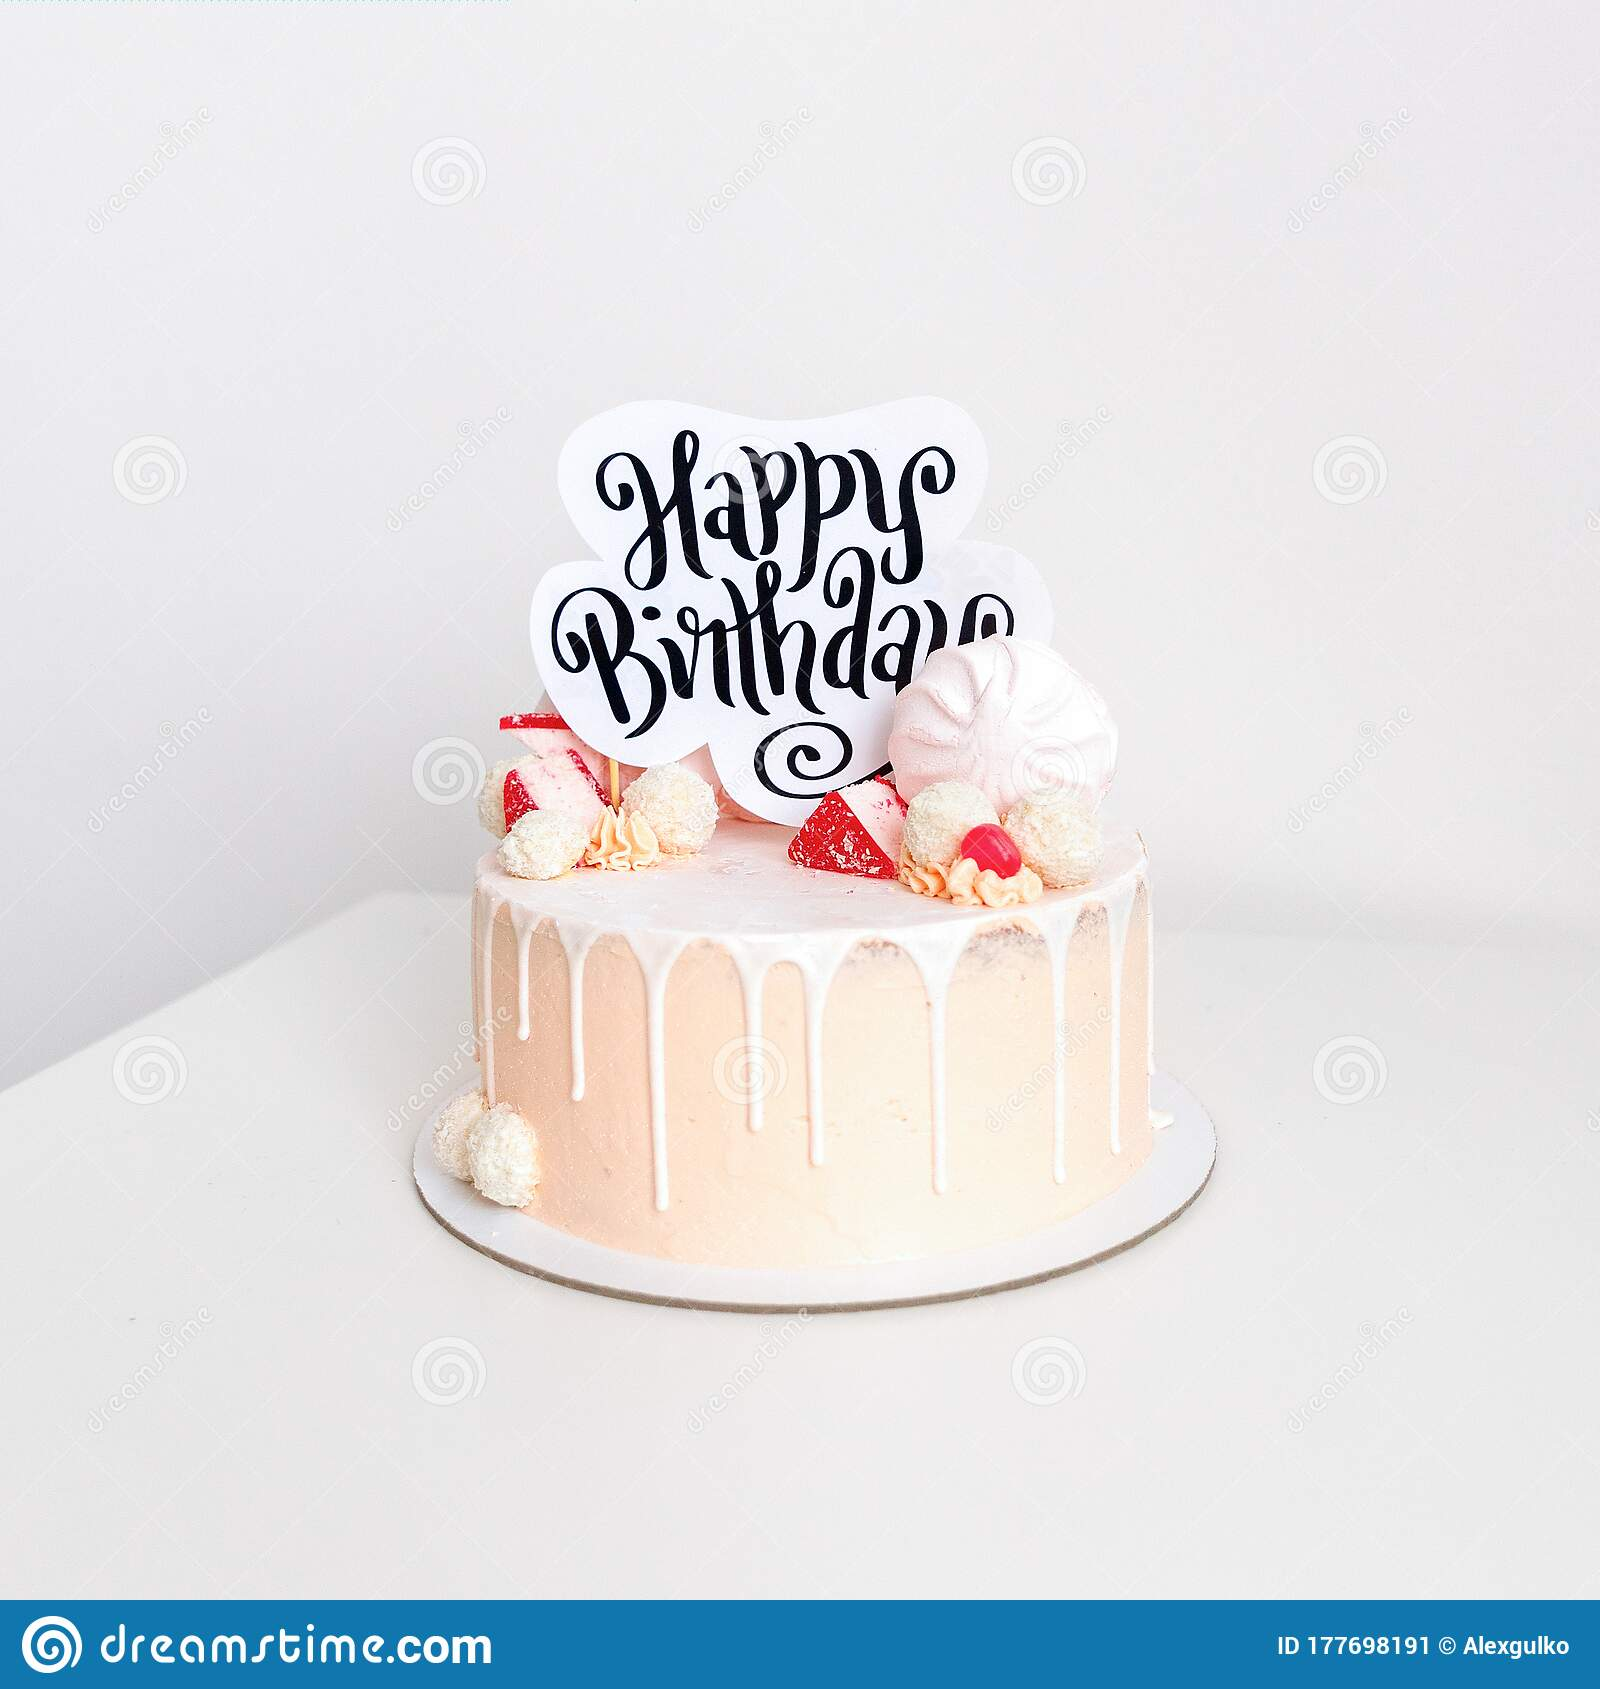 Beautiful Pink Birthday Cake For A Girl Decorated With Sweet Candies With White Background Stock Image Image Of Delicious Gift 177698191